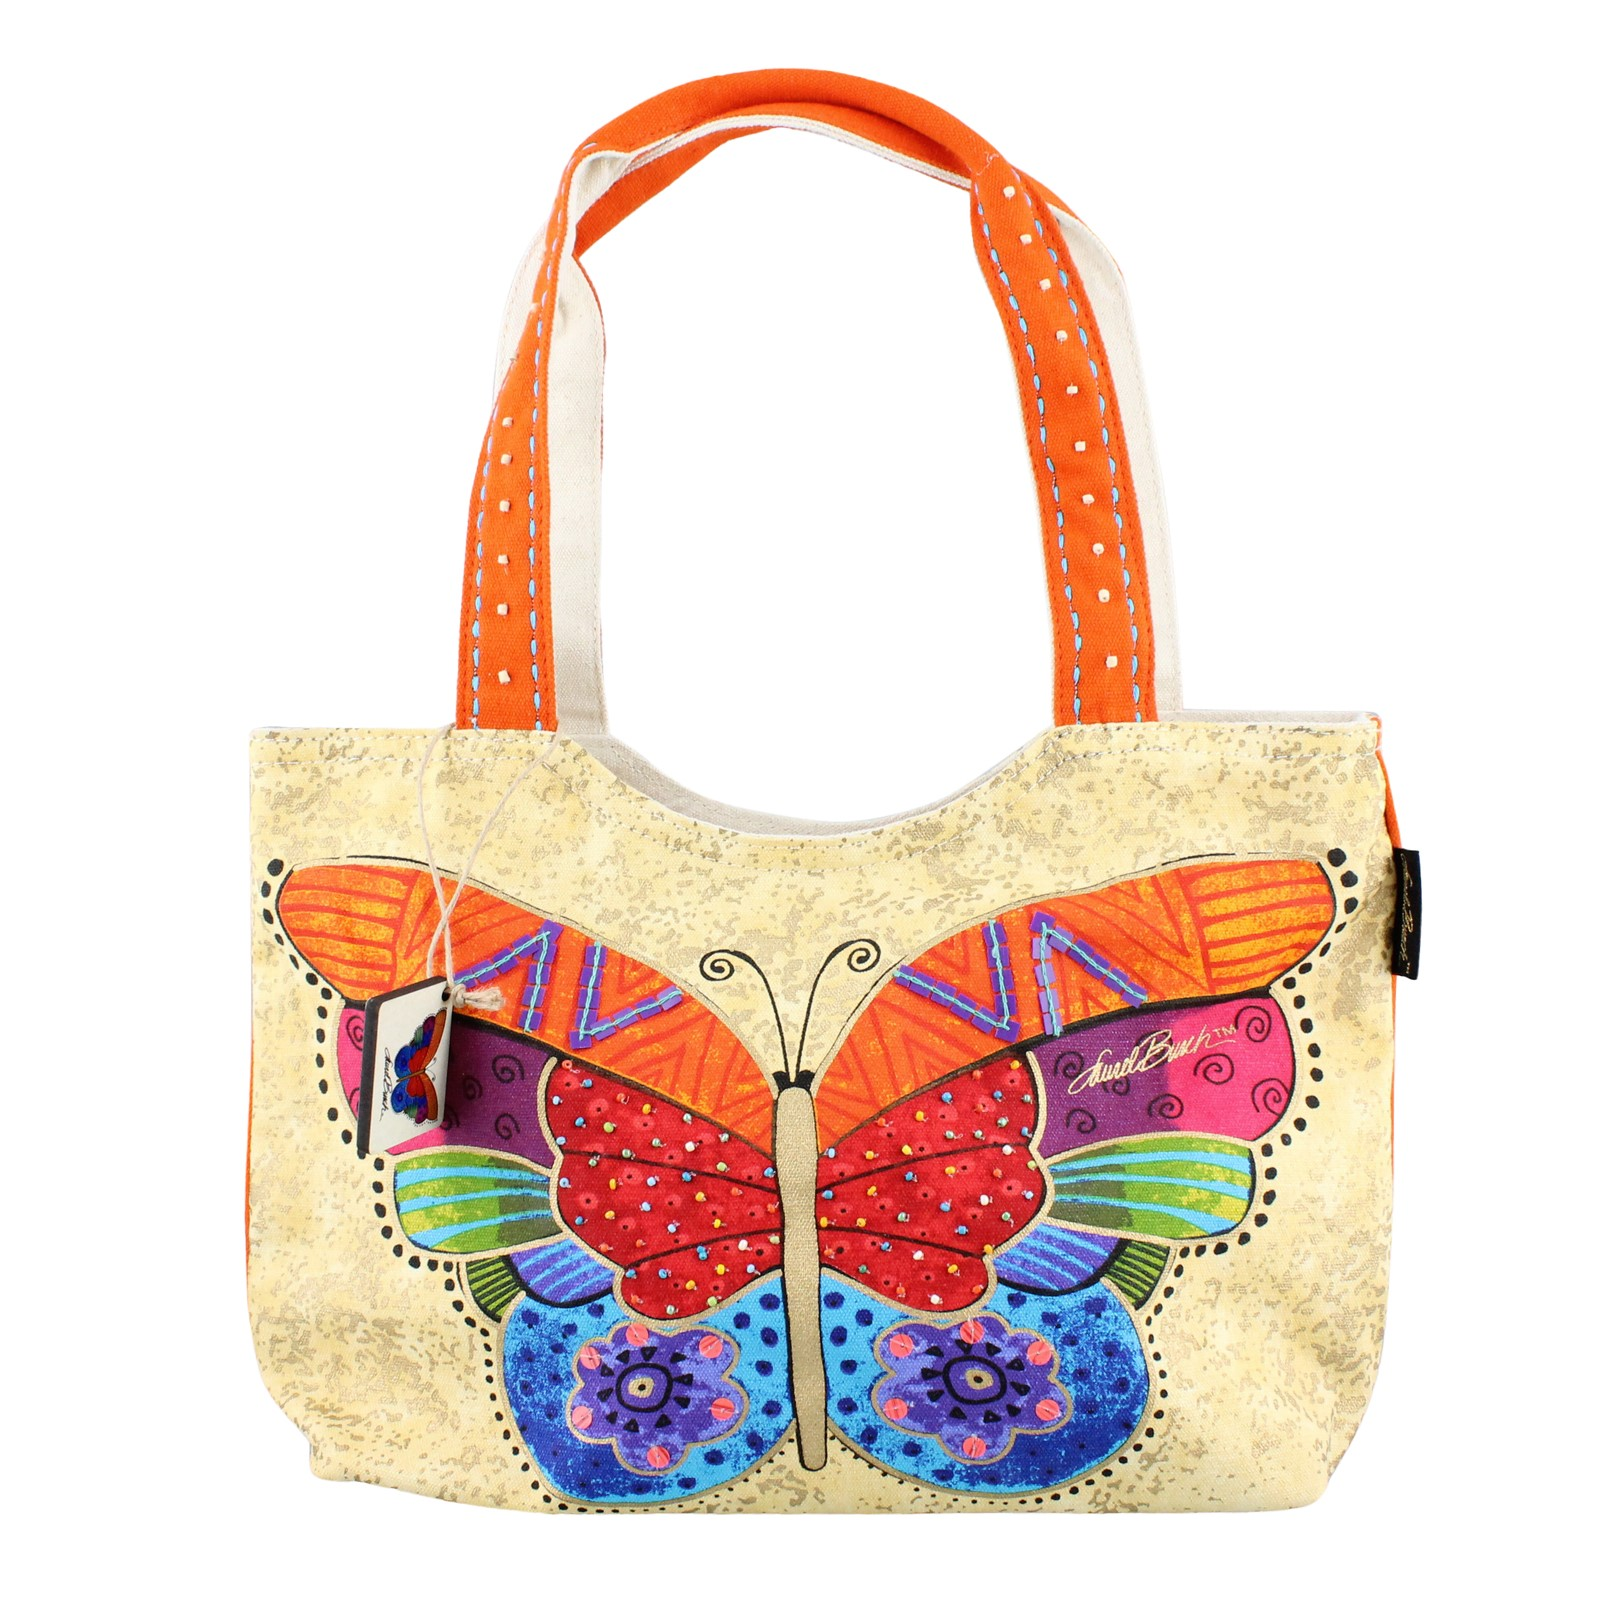 Laurel Burch Medium Tote Bag